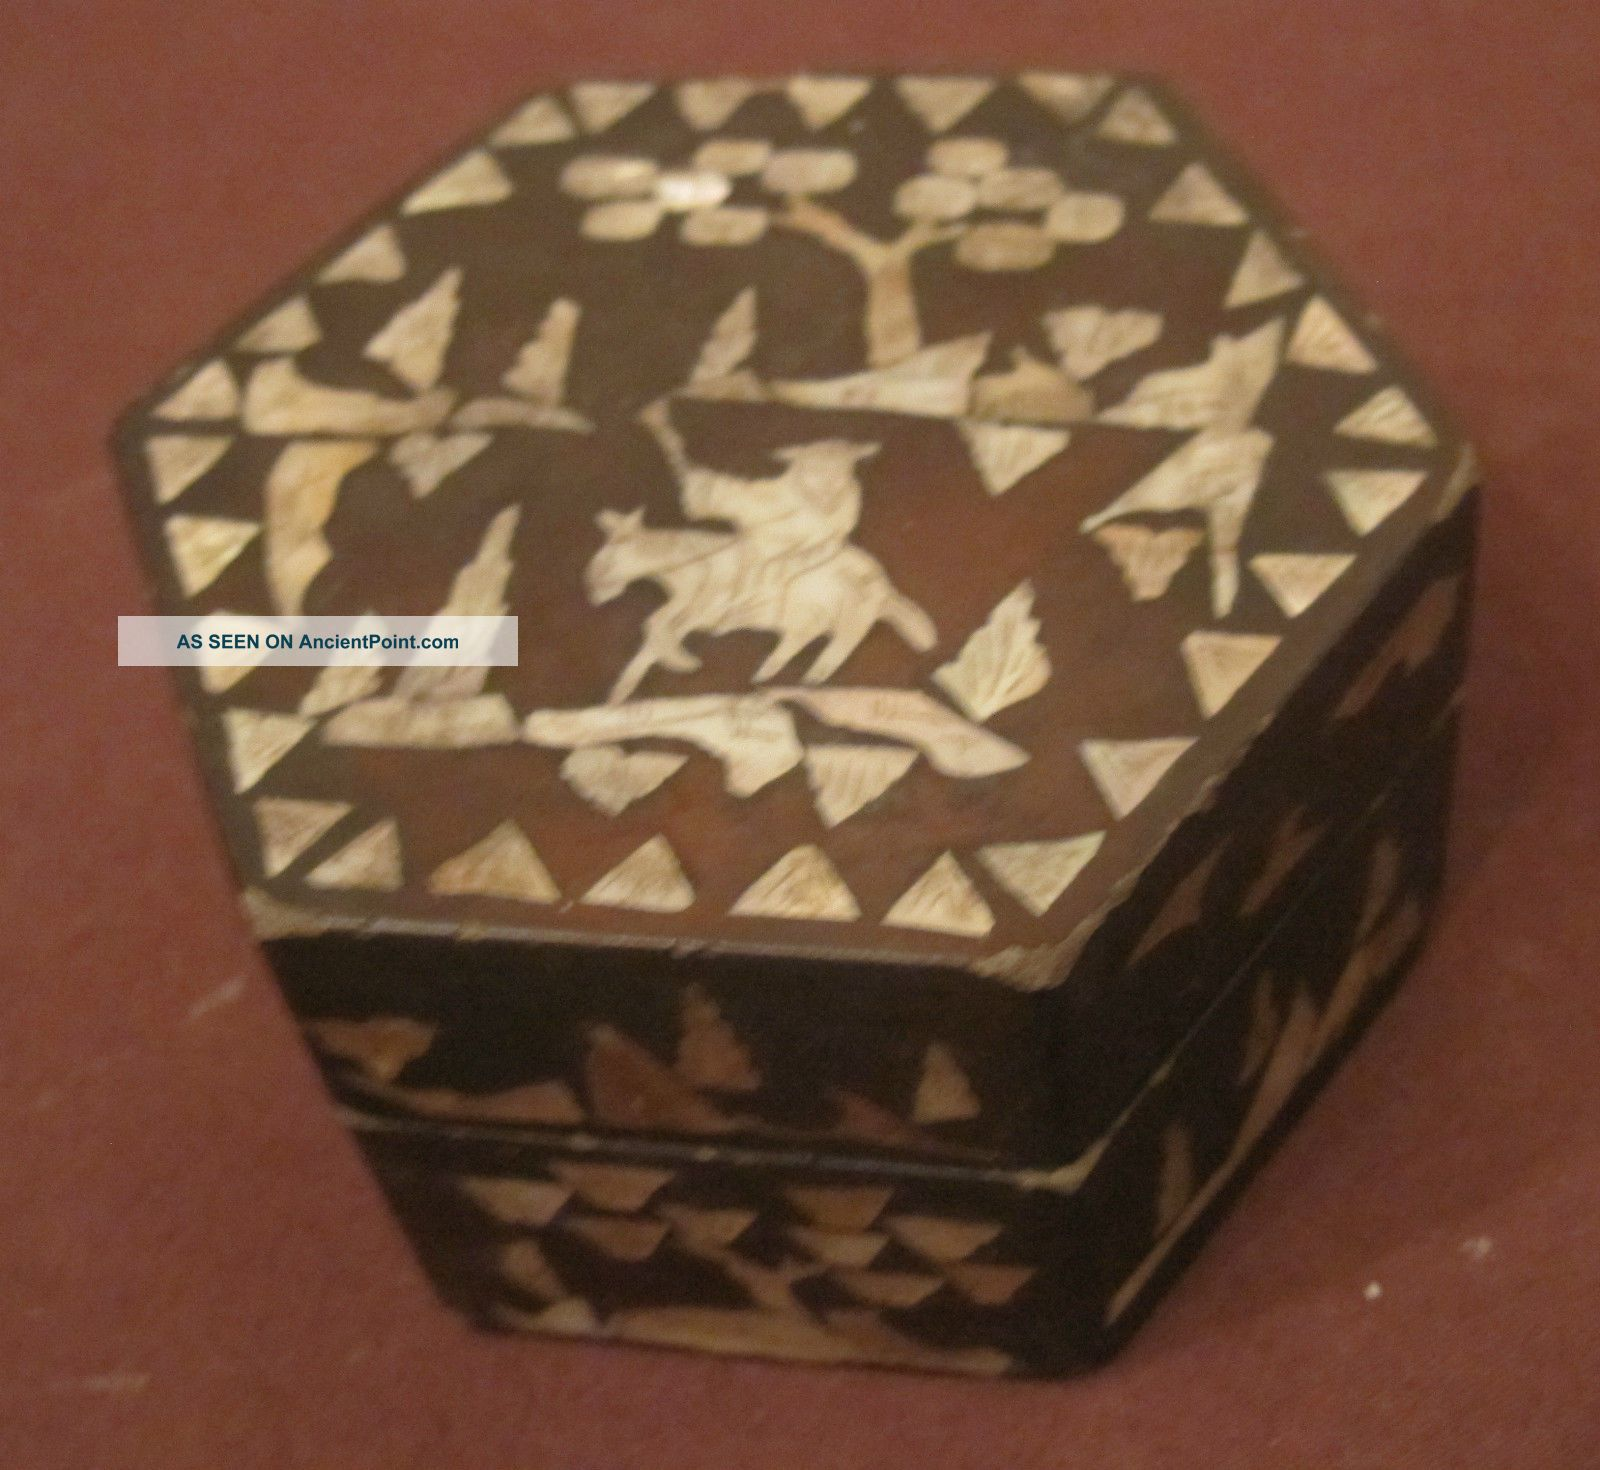 Antique Rare 1800s Lacquer Inlaid Mother Of Pearl Hexagon Trinket Vanity Old Box Boxes photo